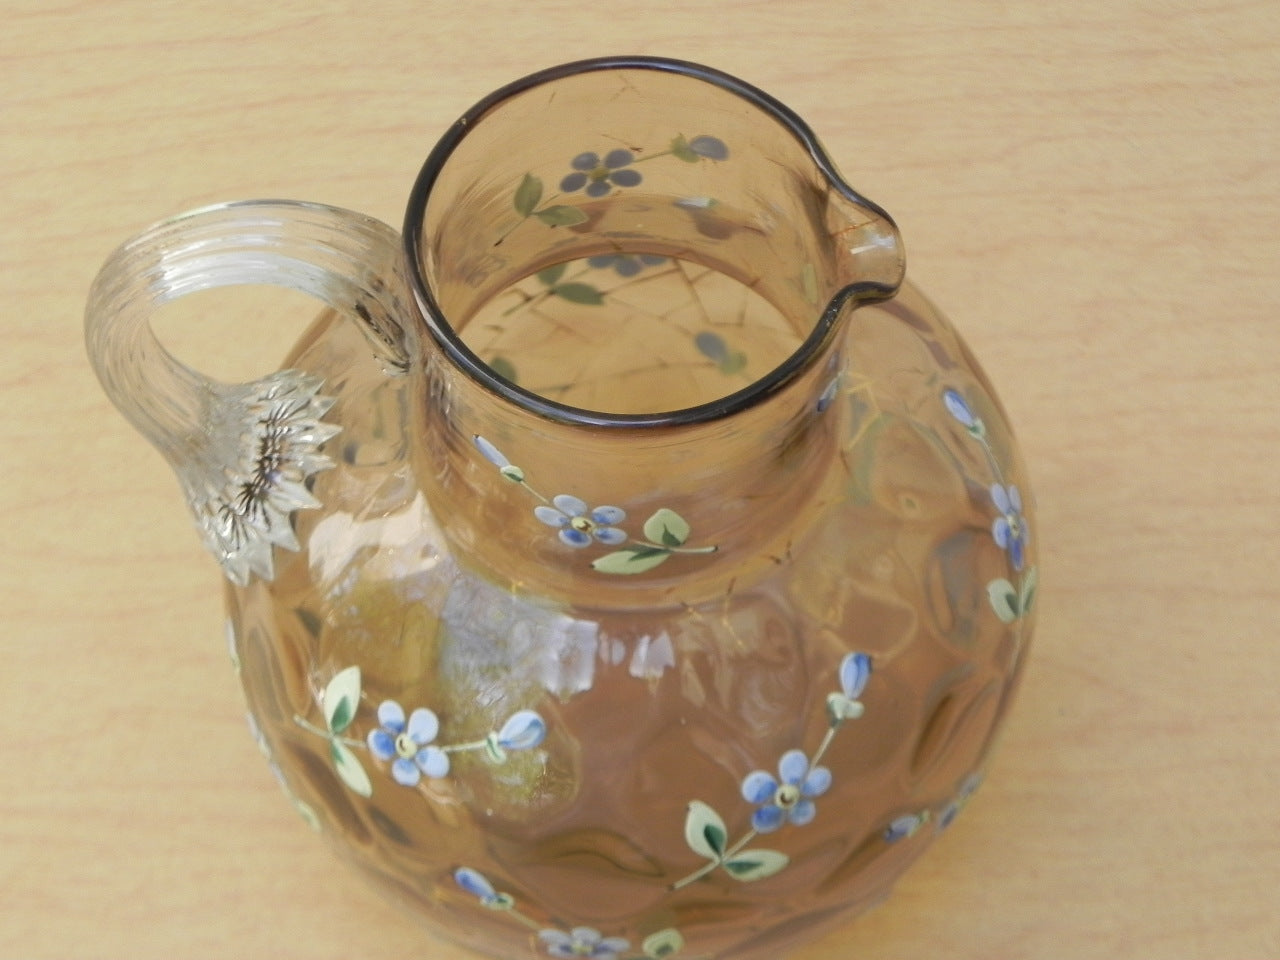 ... Small Round Honeycomb Glass Pitcher With Hand Painted Blue Flowers ...